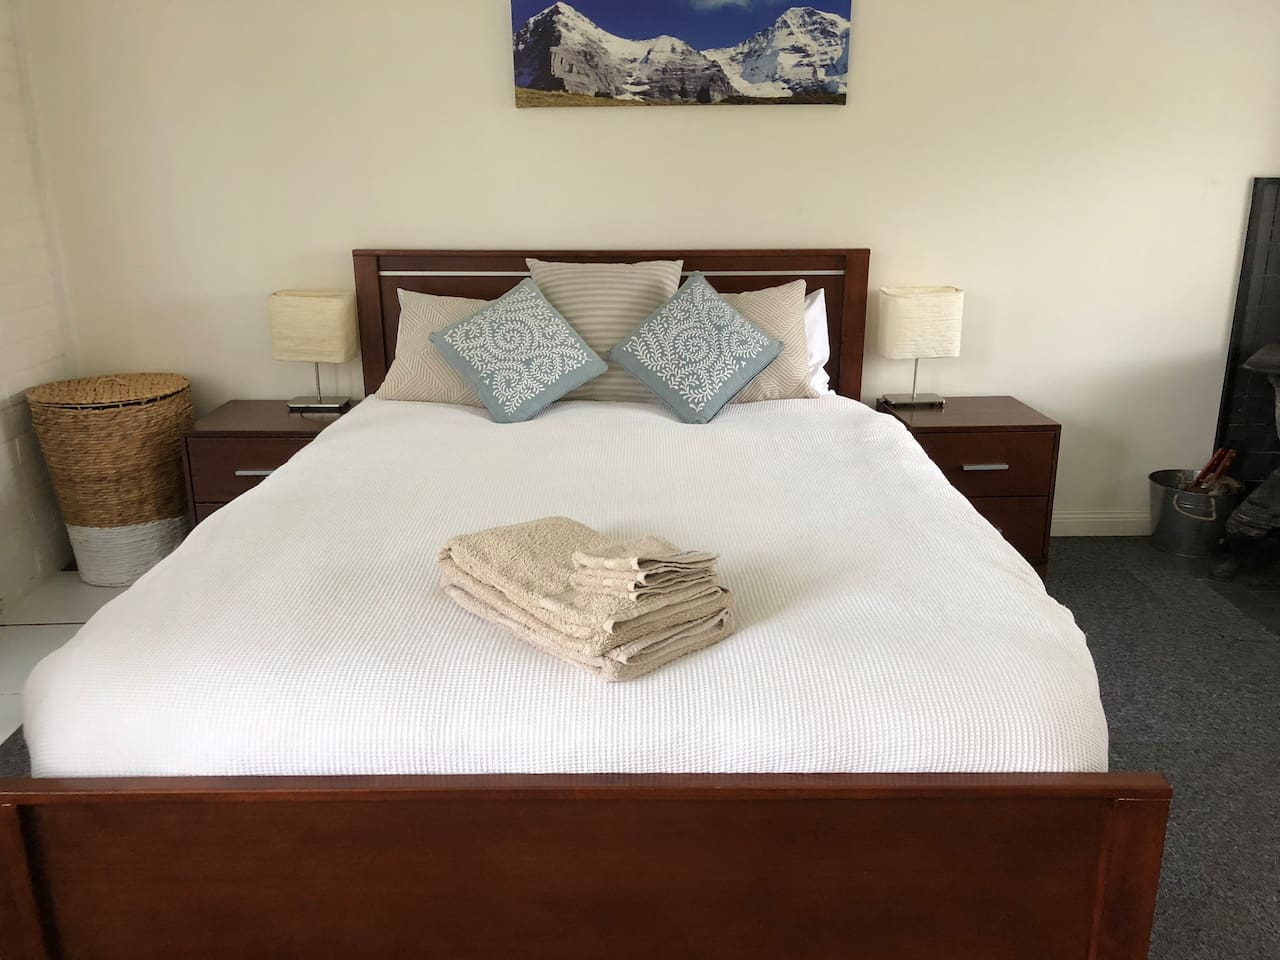 The very comfy queen bed with lovely Sheridan sheets and towels